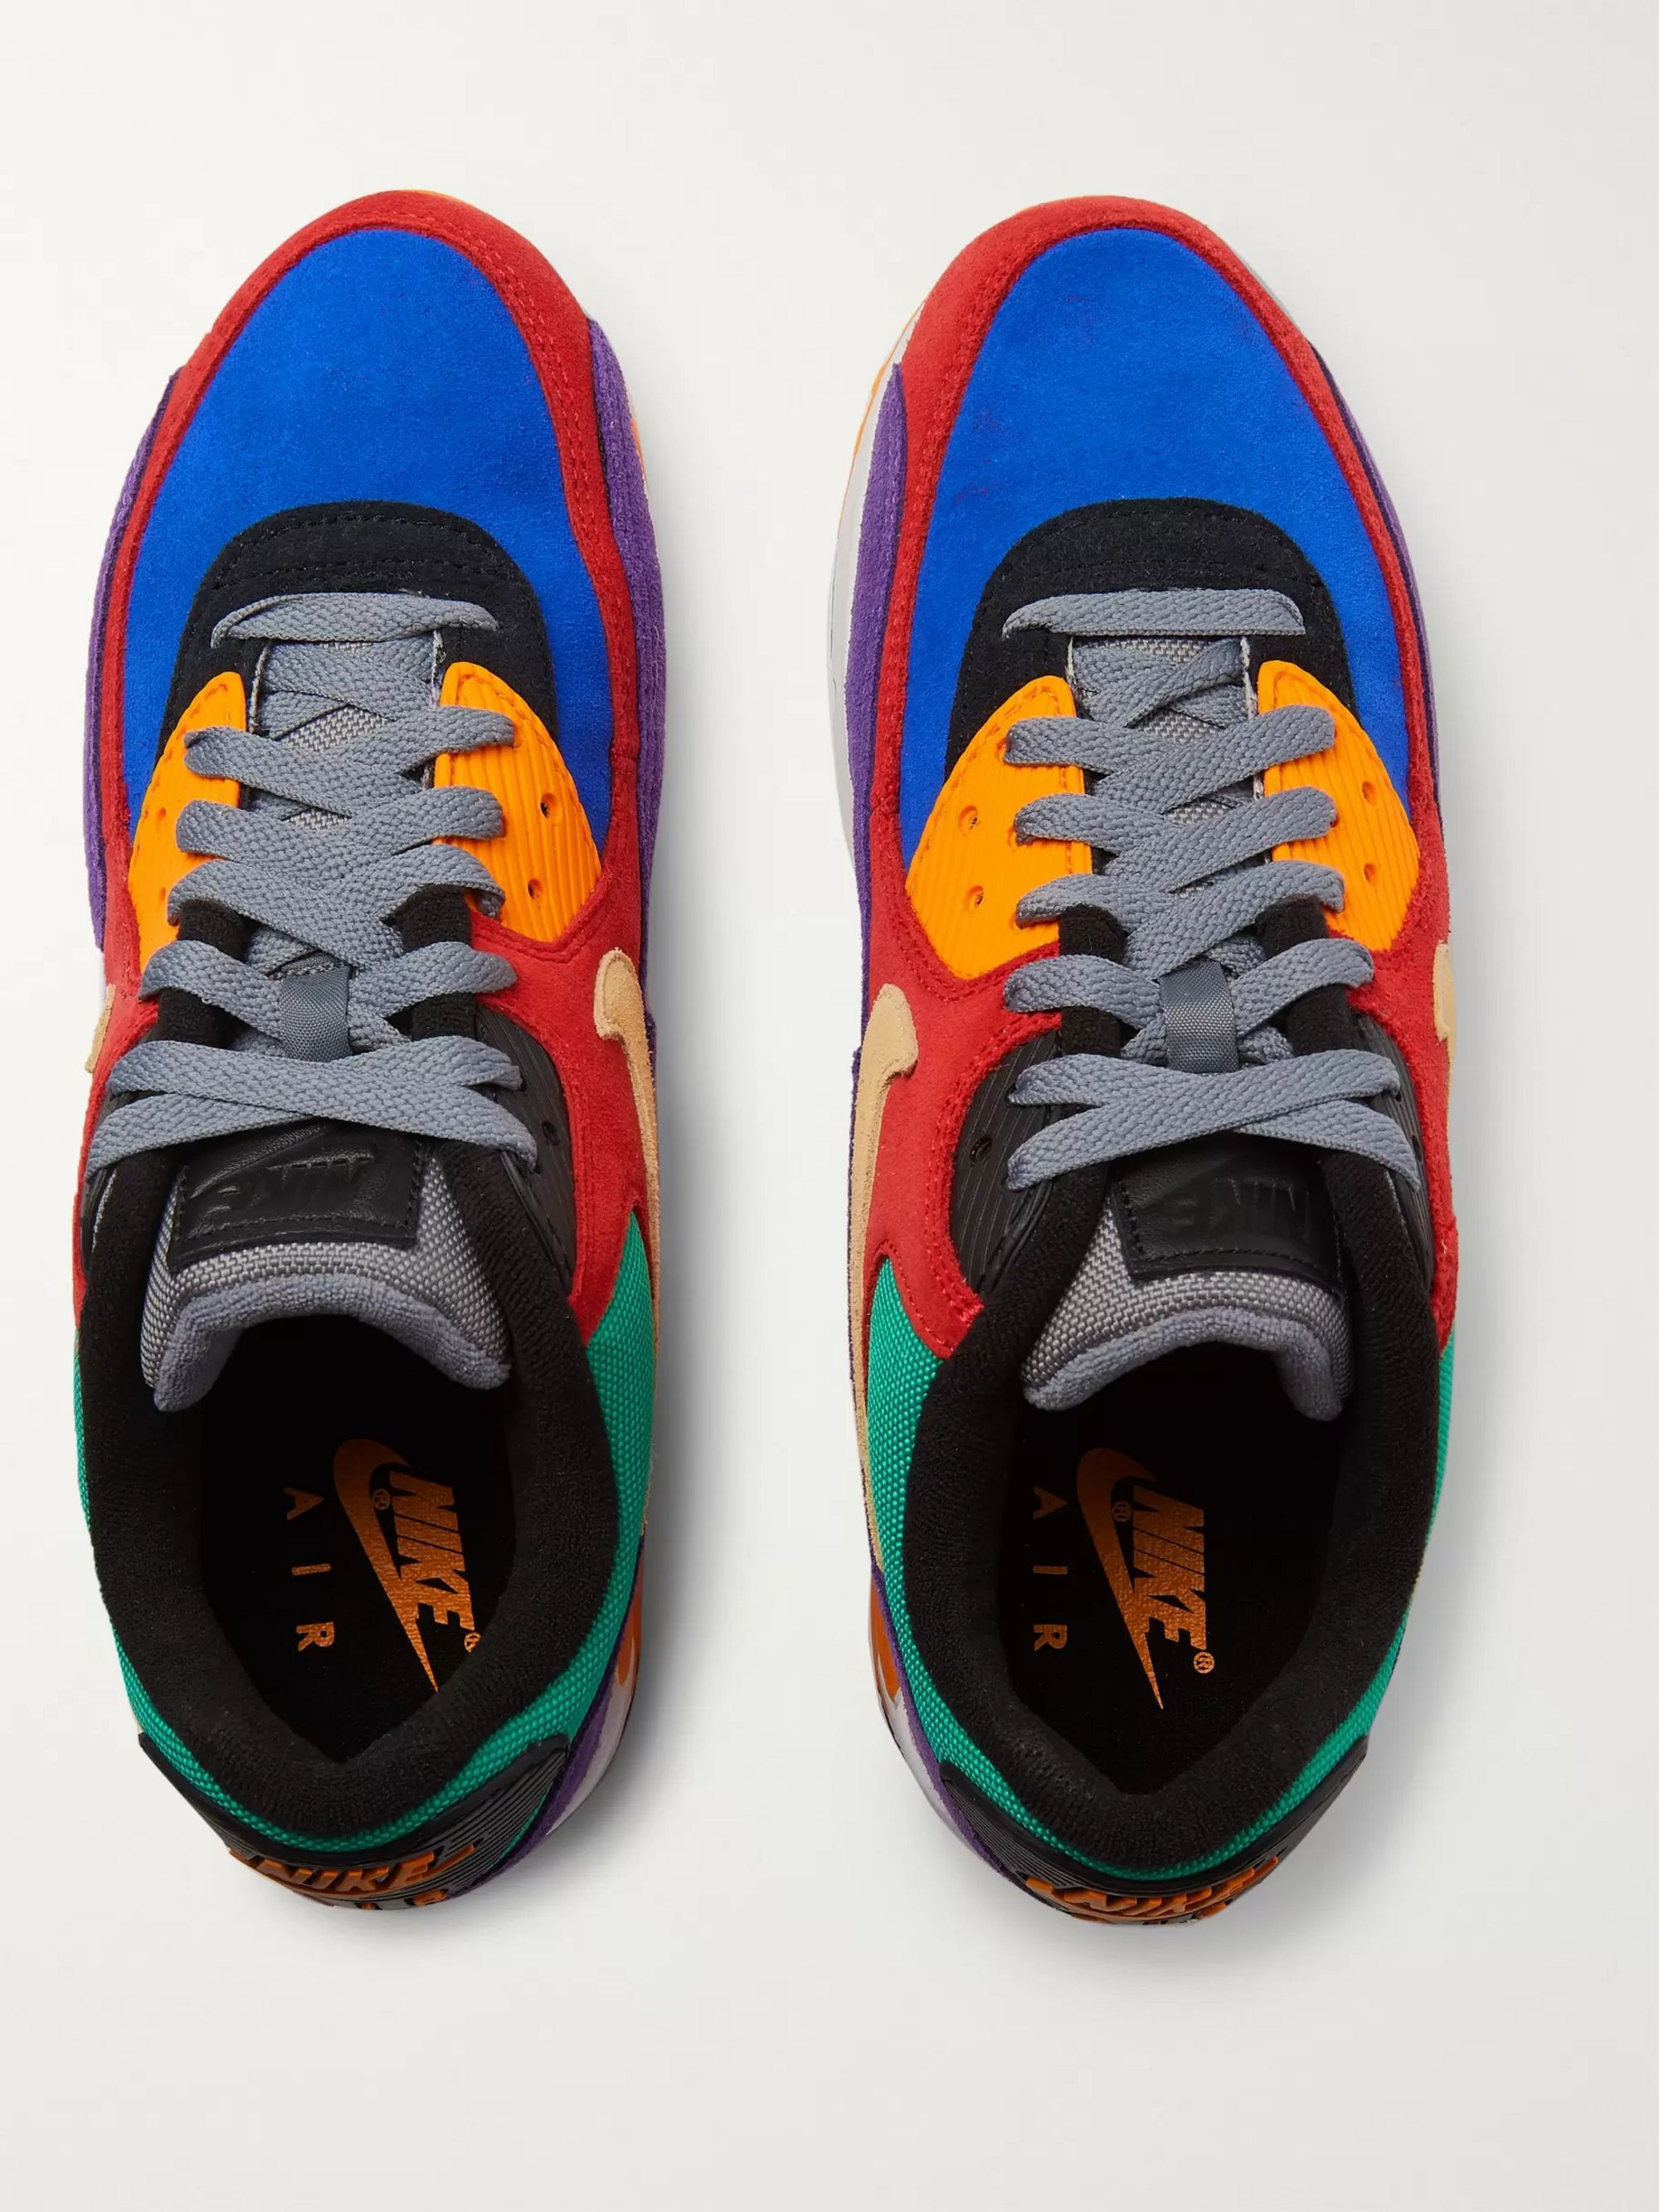 Air Max 90 QS Viotech Rubber Trimmed Suede and Mesh Sneakers